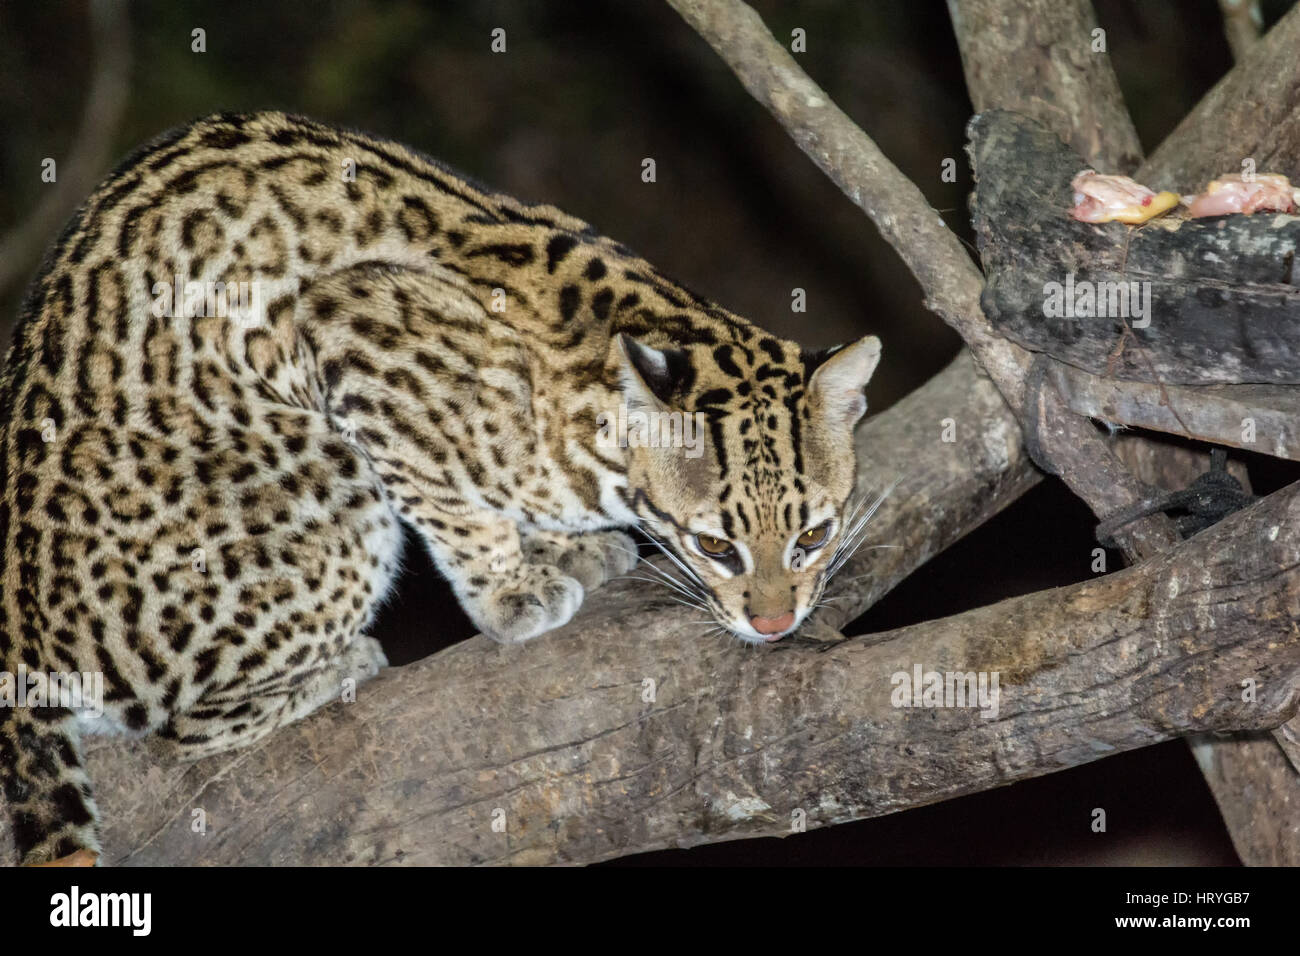 Ocelot at night time with a spotlight on it, as it comes looking for some meat left for it, in the Pantanal region - Stock Image